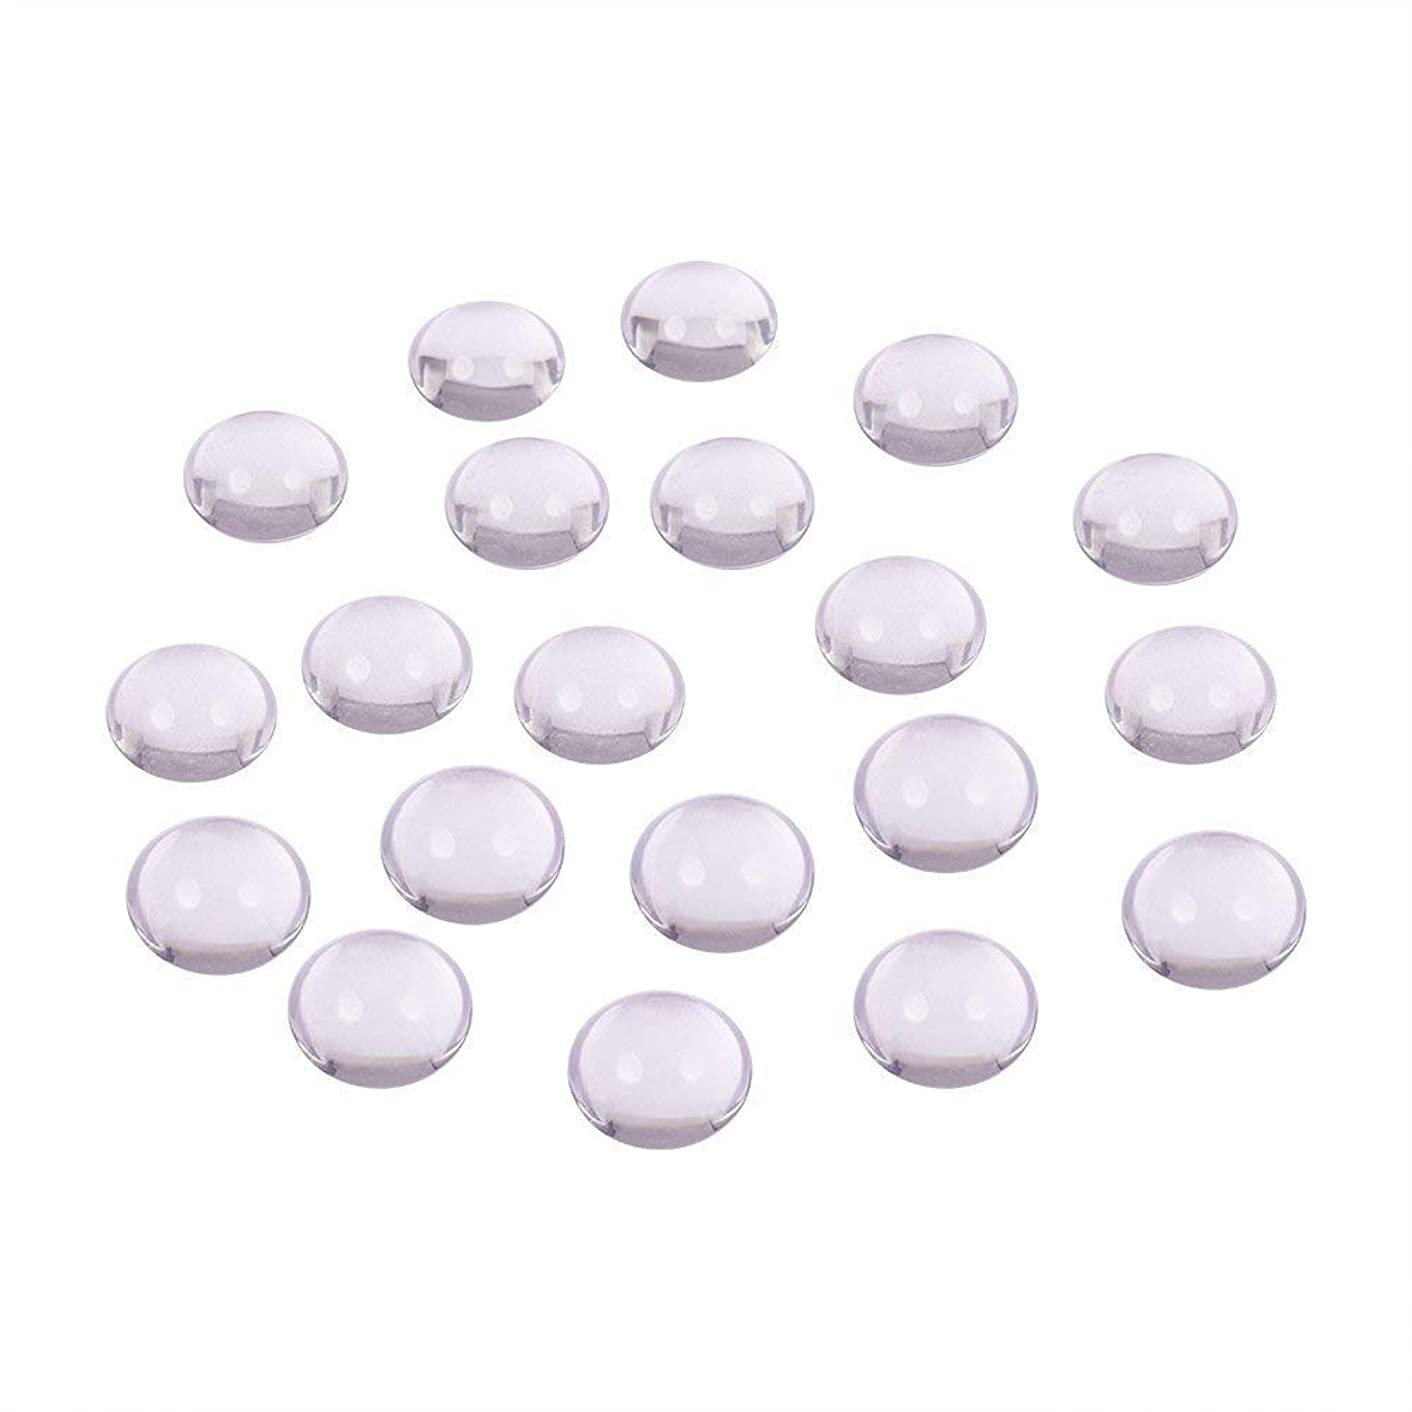 Cabochons PH Pandahall 50pcs 12mm Half Round Flat Back Clear Glass Dome, for Photo Pendant Craft Jewelry Making